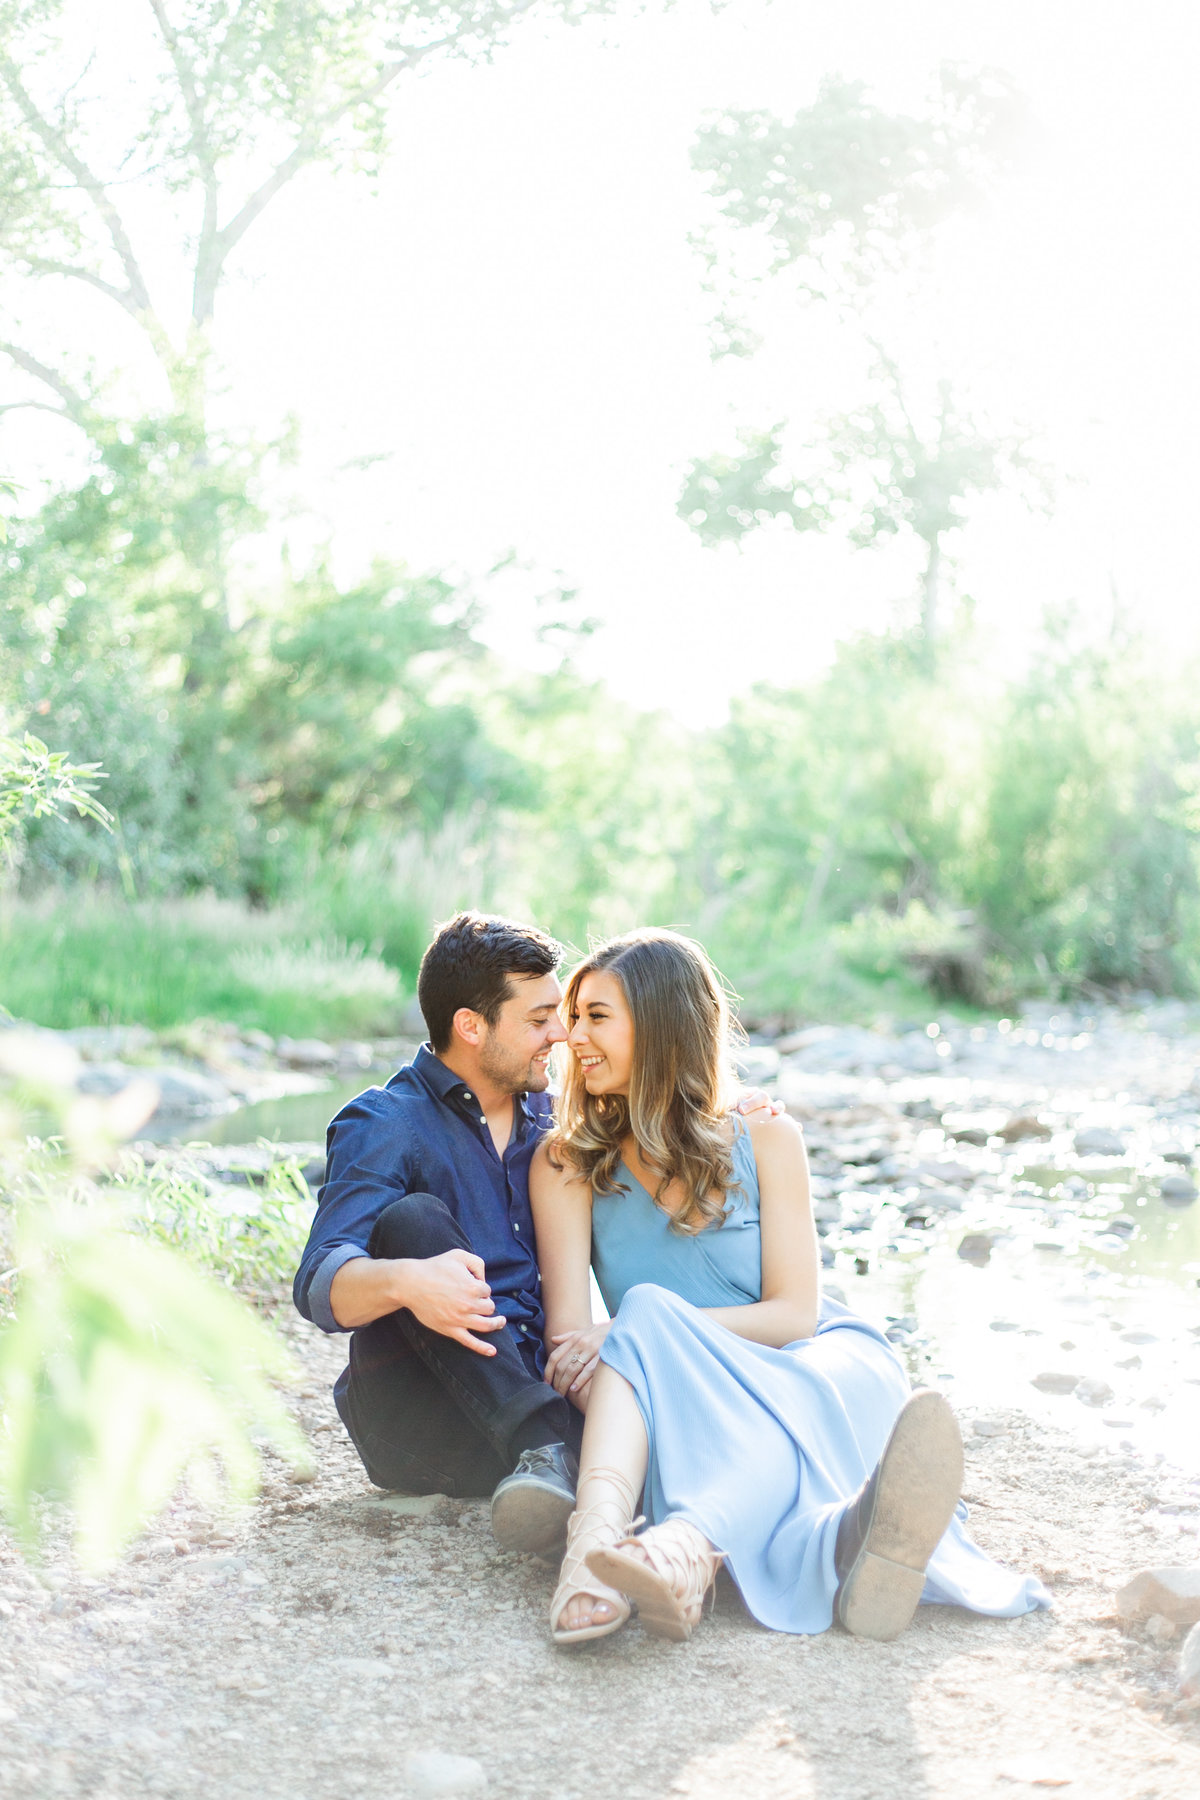 Karlie Colleen Photography - Arizona Desert Engagement - Brynne & Josh -76